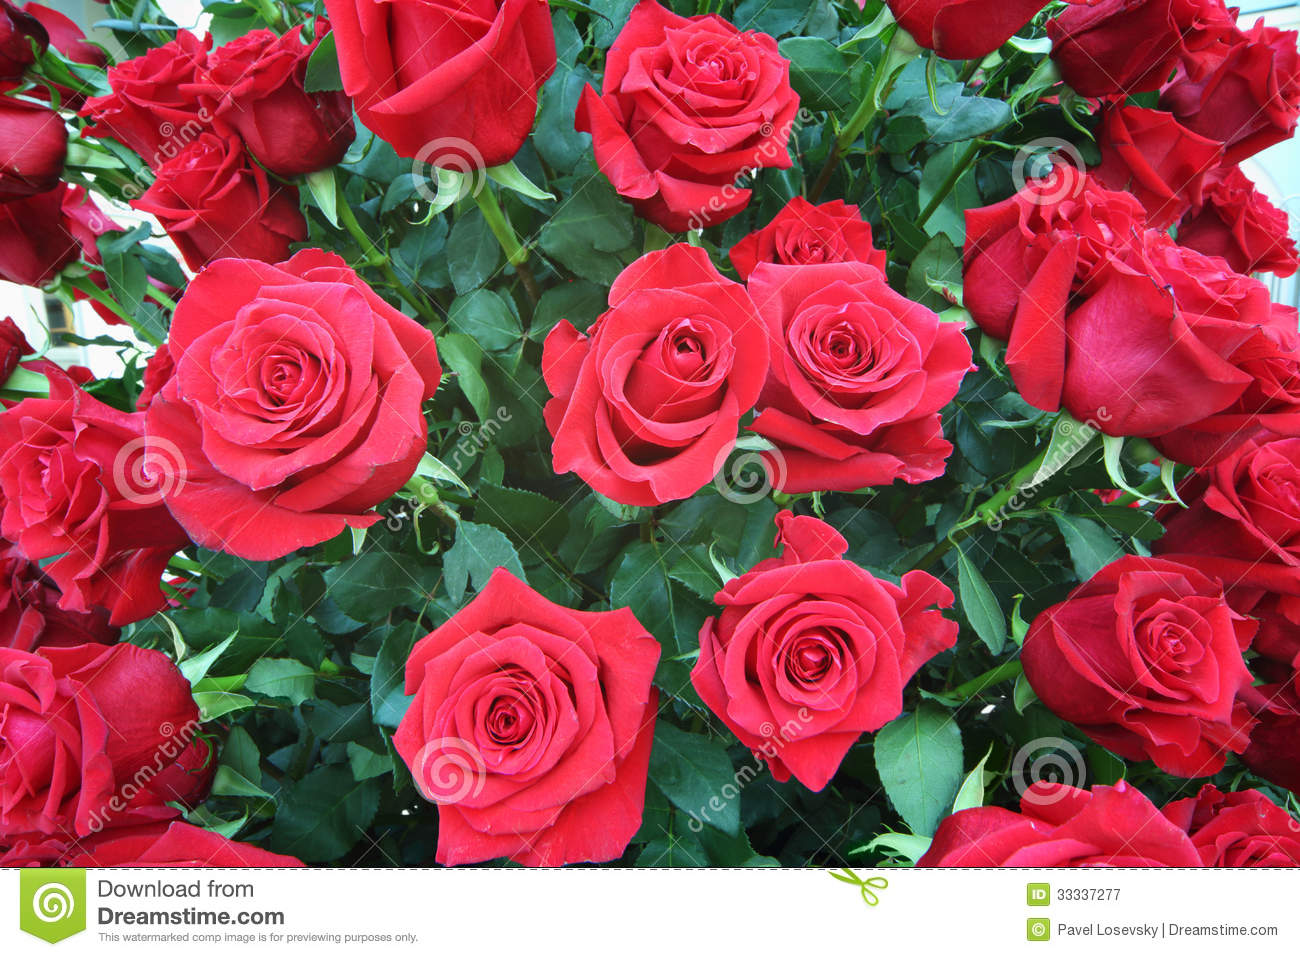 large-bright-bouquet-freshly-cut-big-red-roses-beautiful-33337277